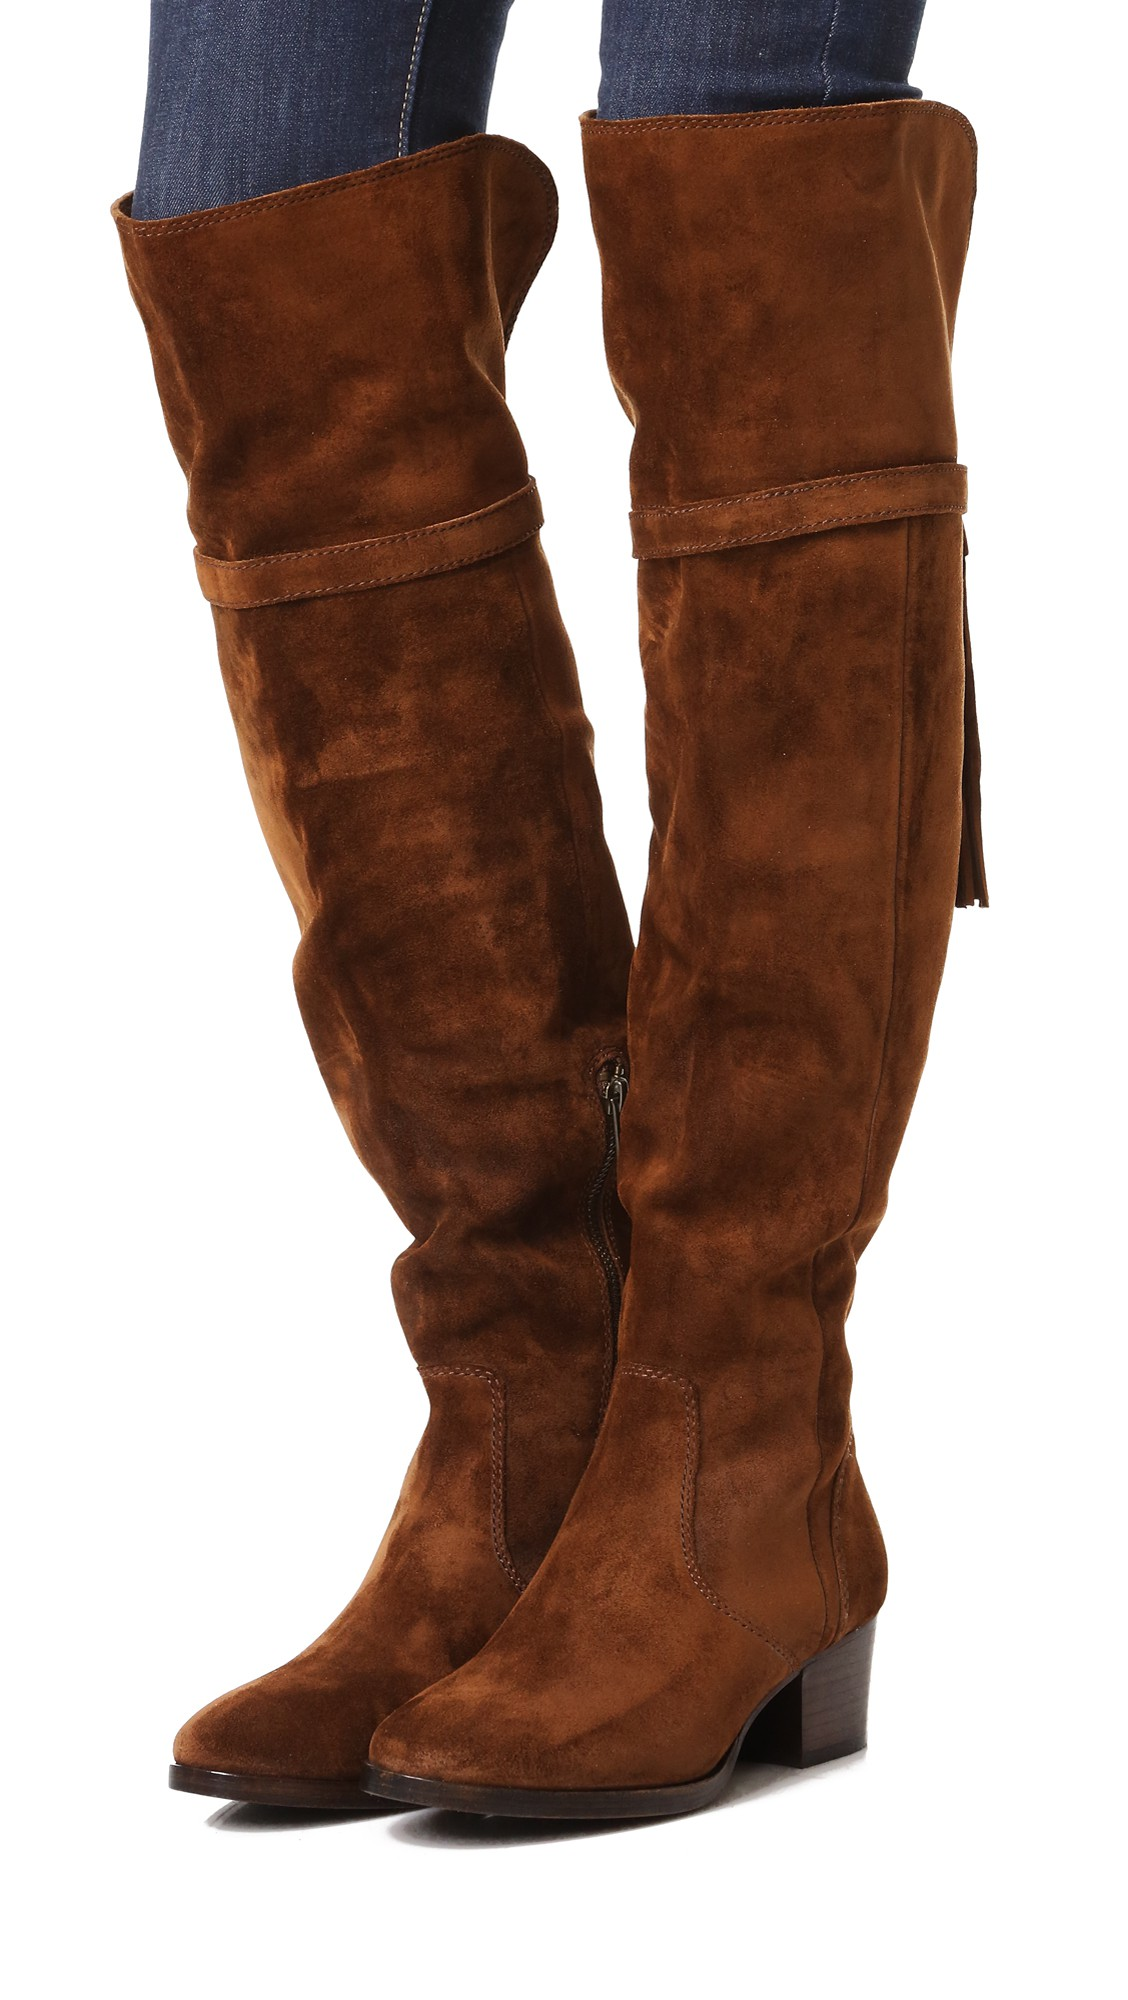 Frye Embellished Knee-High Boots pick a best for sale find great clearance websites 2Q0vh6Go